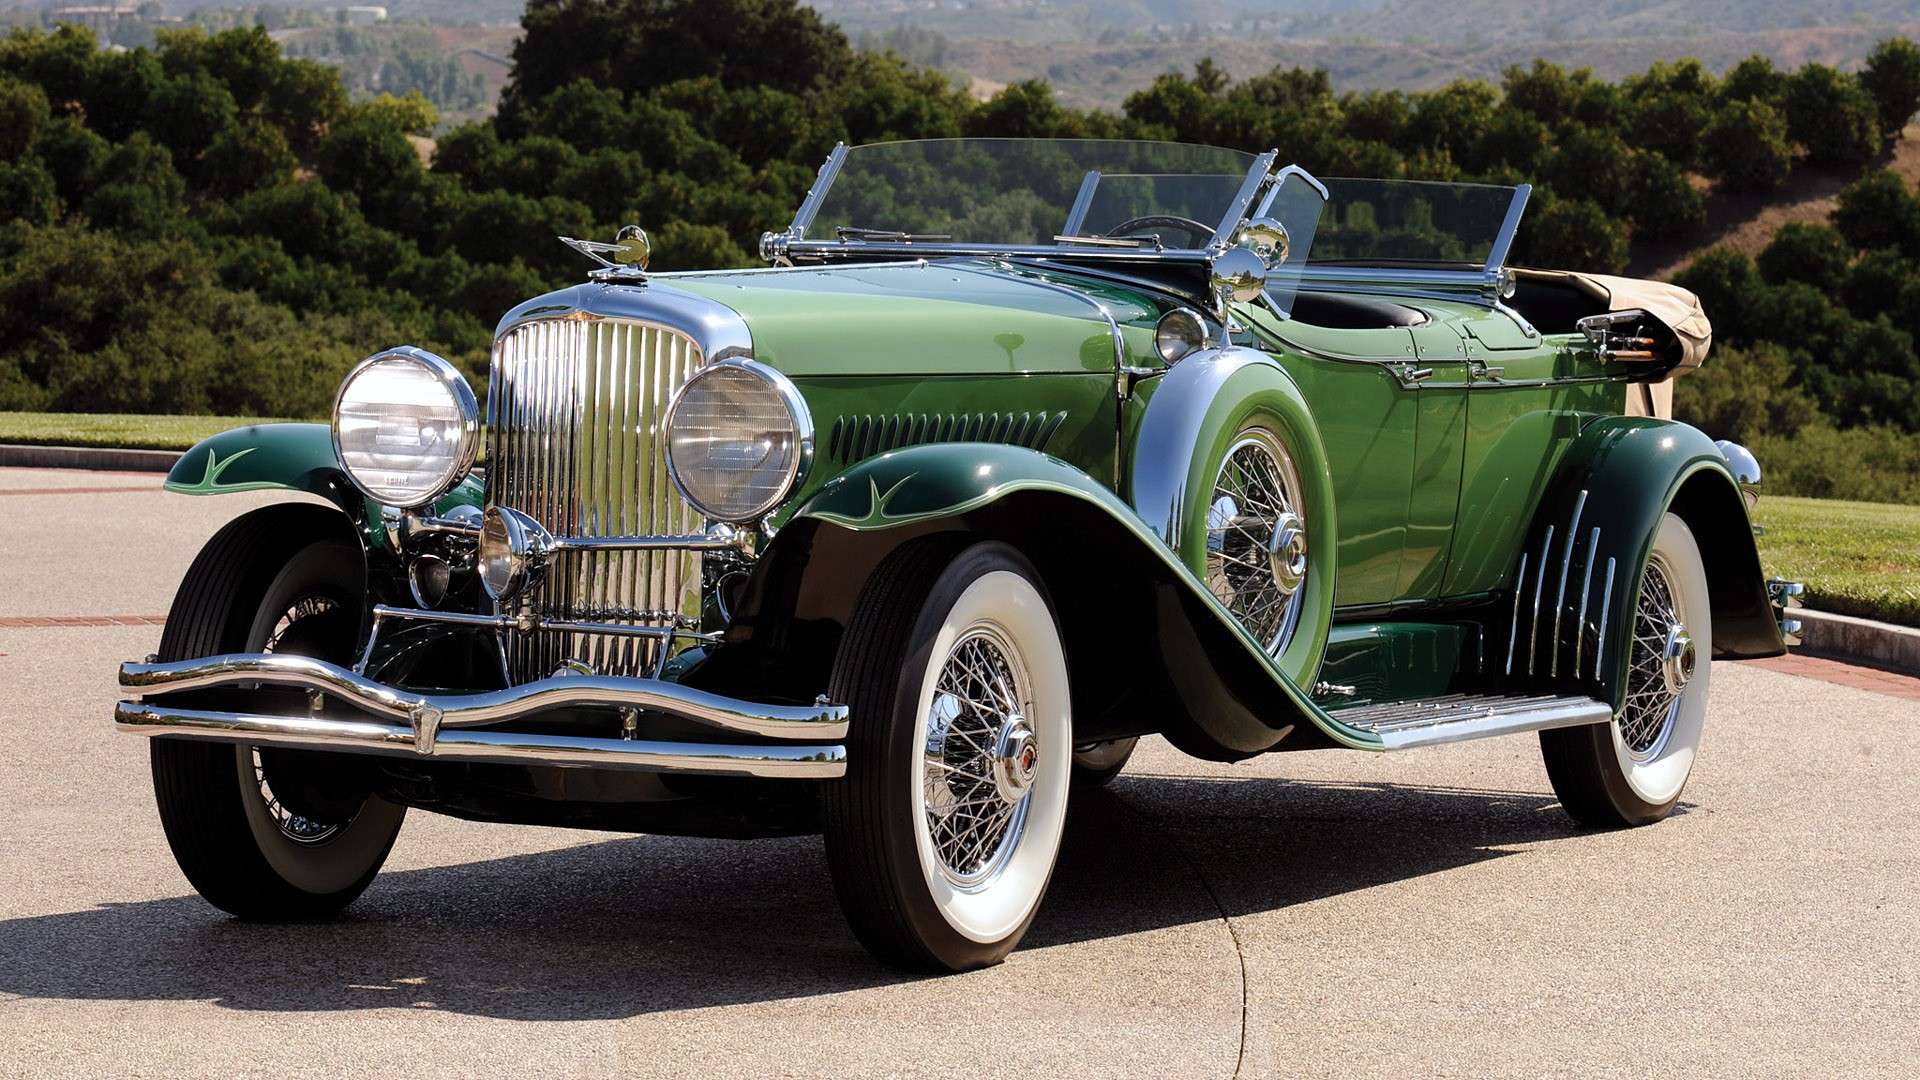 duesenberg vintage car wallpapers - photo #17